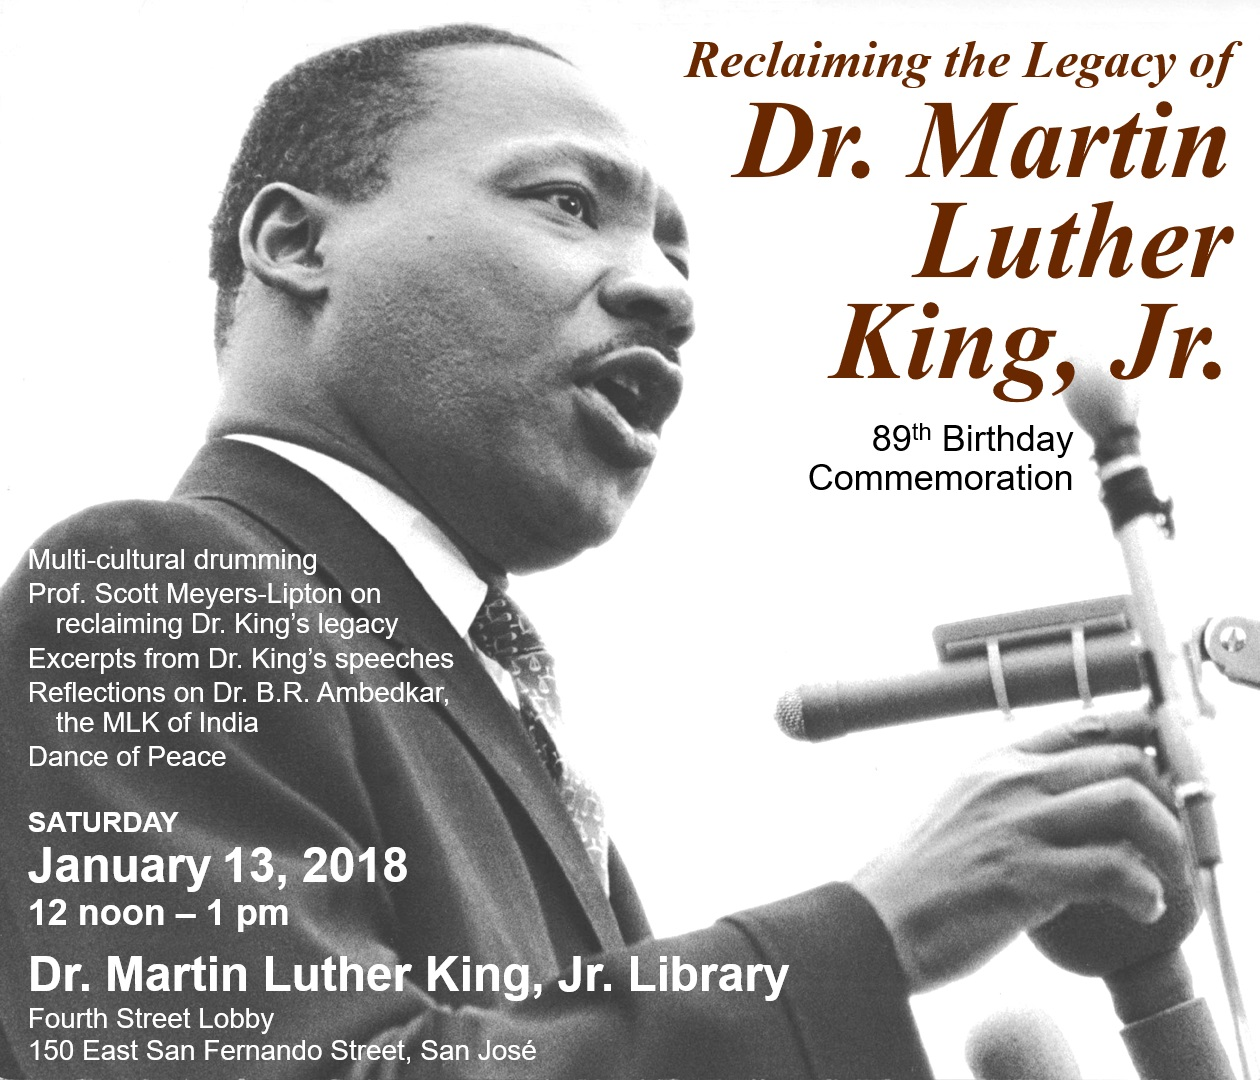 Dr. Martin Luther King, Jr.'s Brithday: Reclaiming the ...